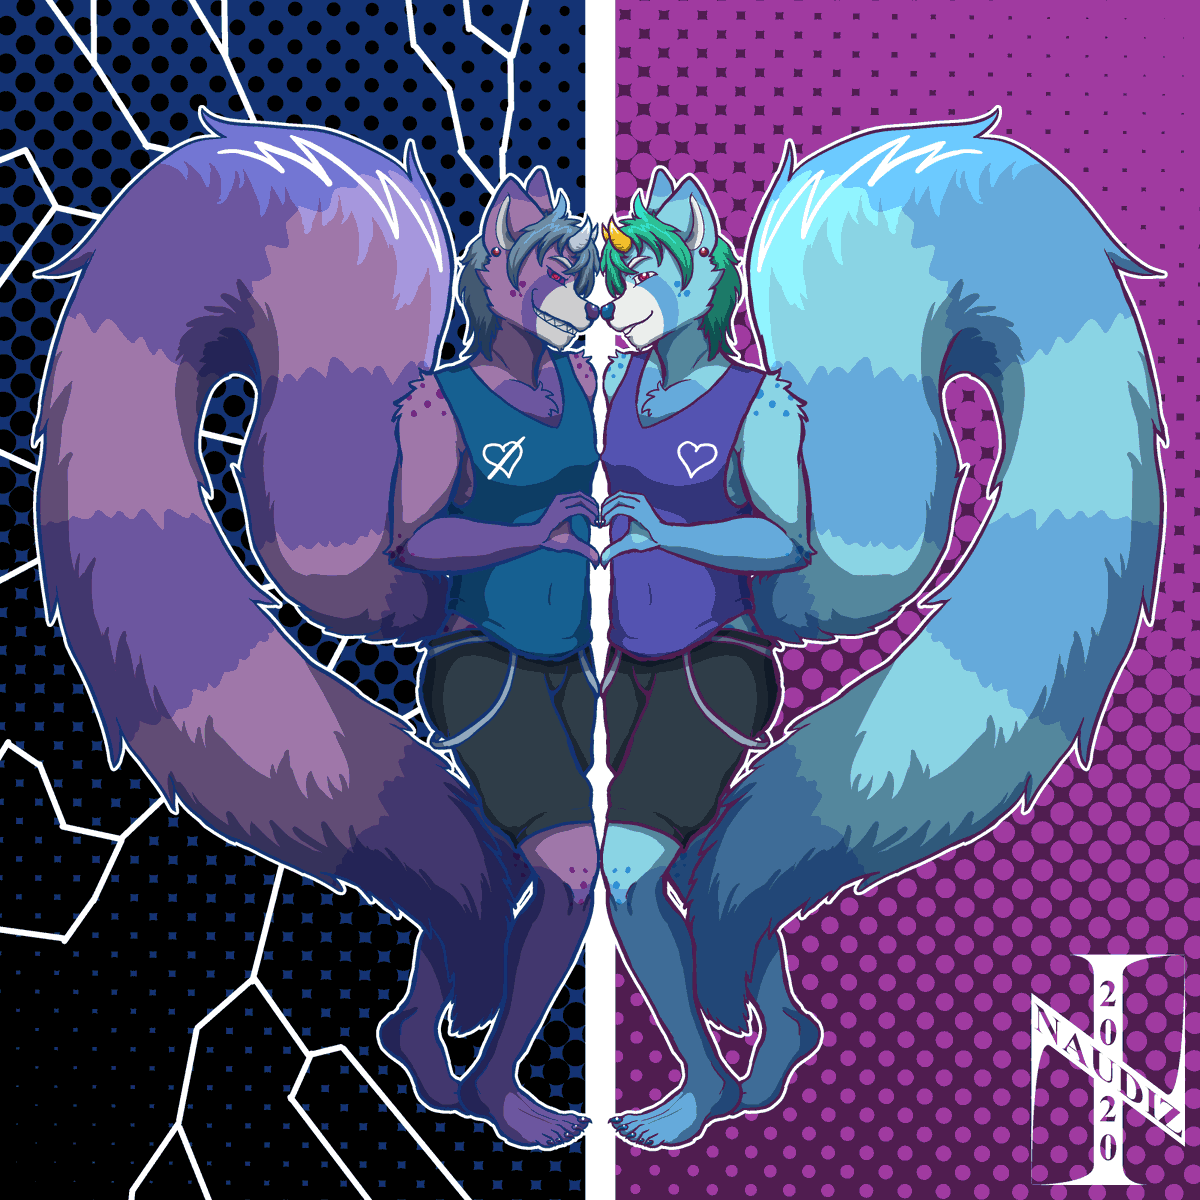 Commission for @thelewddeer of his main character, Kain, getting to know a certain part of himself. Where have I seen something like this before...  Comments, RTs appreciated. 💜💙  #furry #anthro #furryart #anthroart